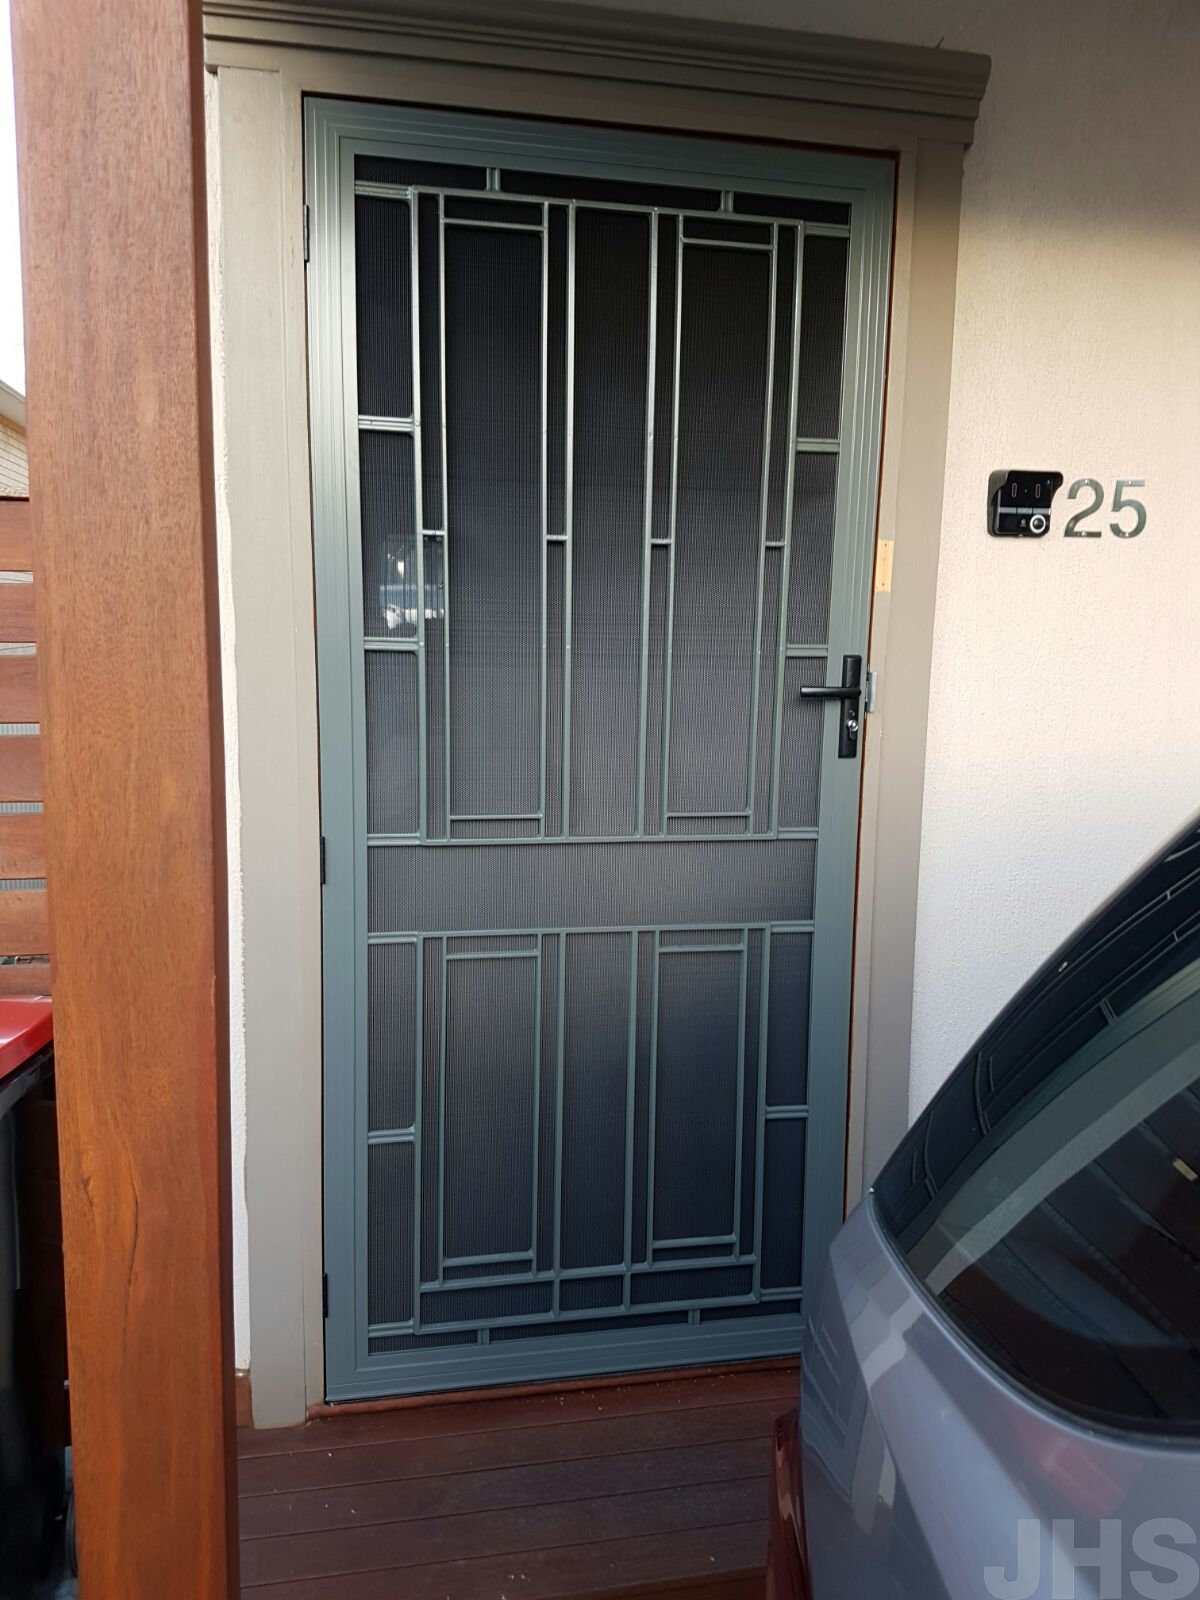 Barrier Doors Colonial Vista Stainless Steel Jhs